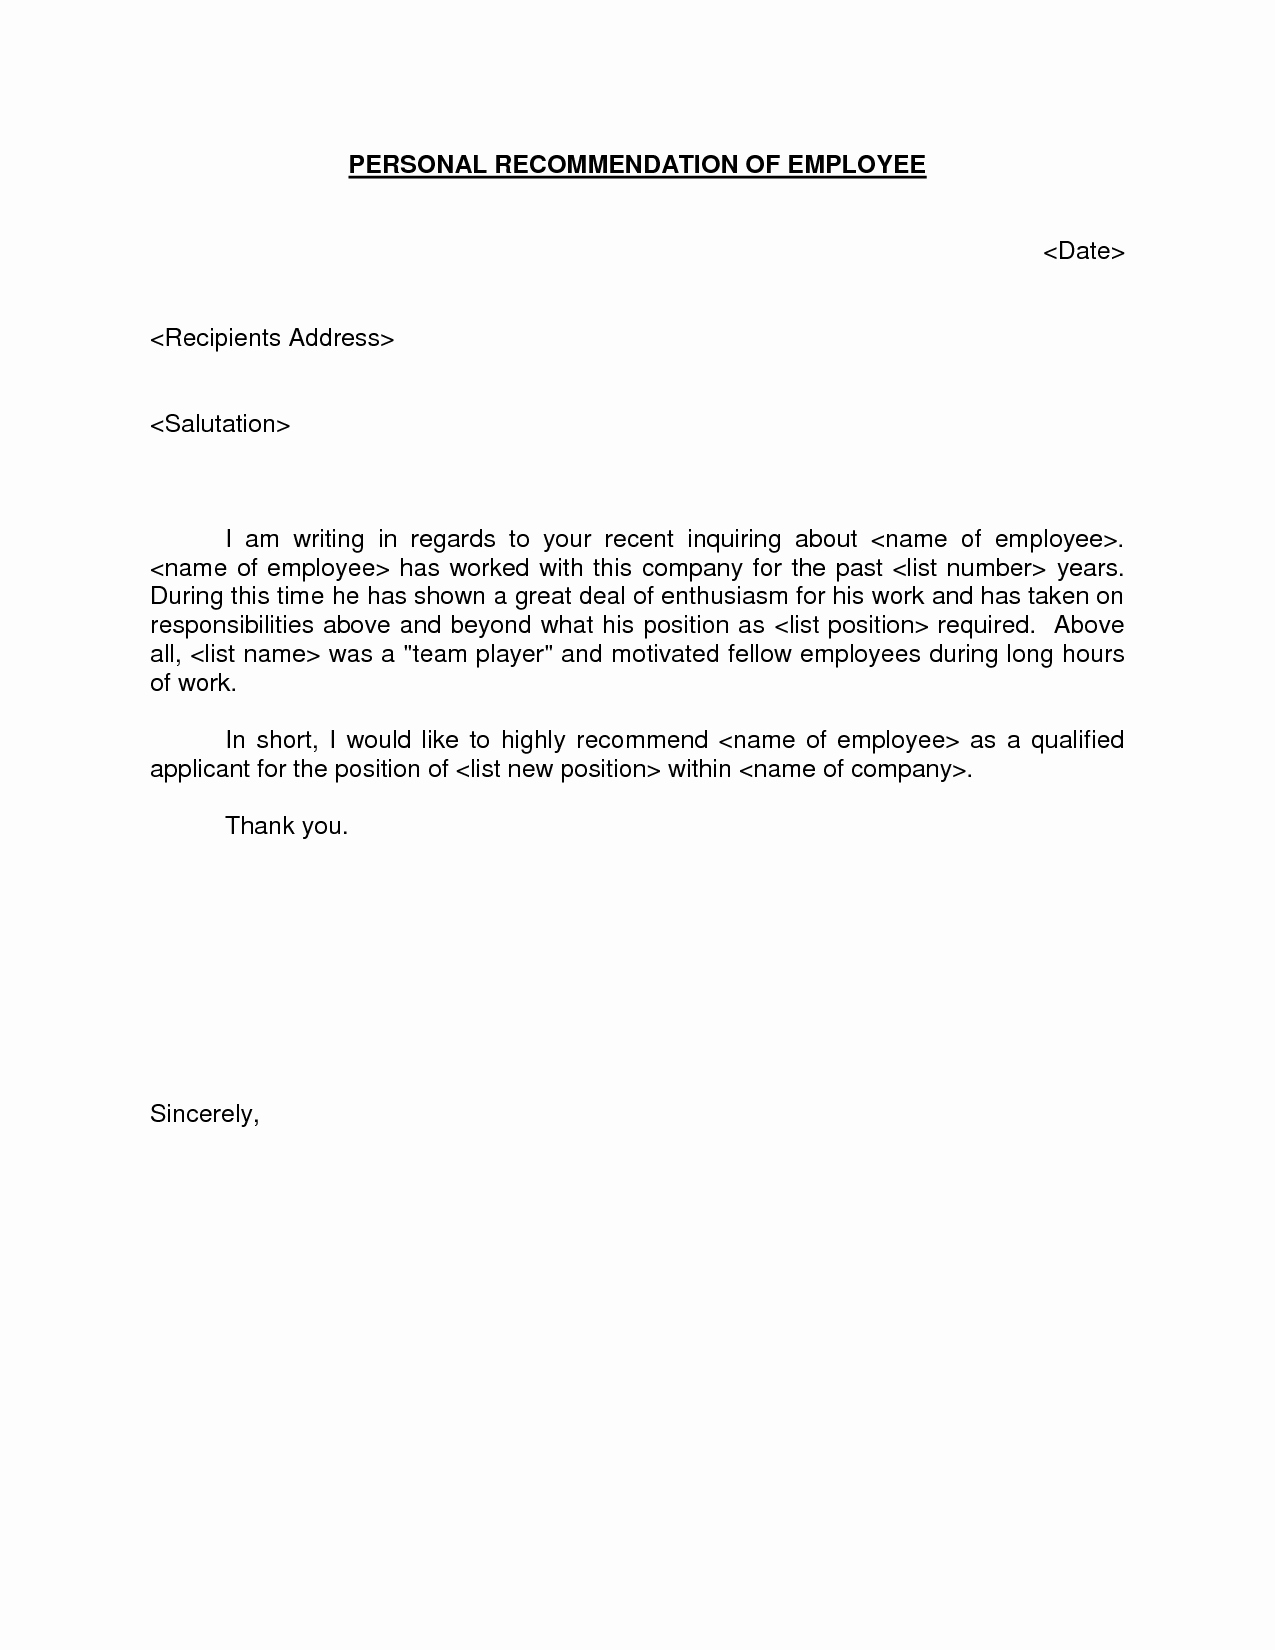 Personal Recommendation Letter for Scholarship New Personal Re Mendation Letter Letter Of Re Mendation